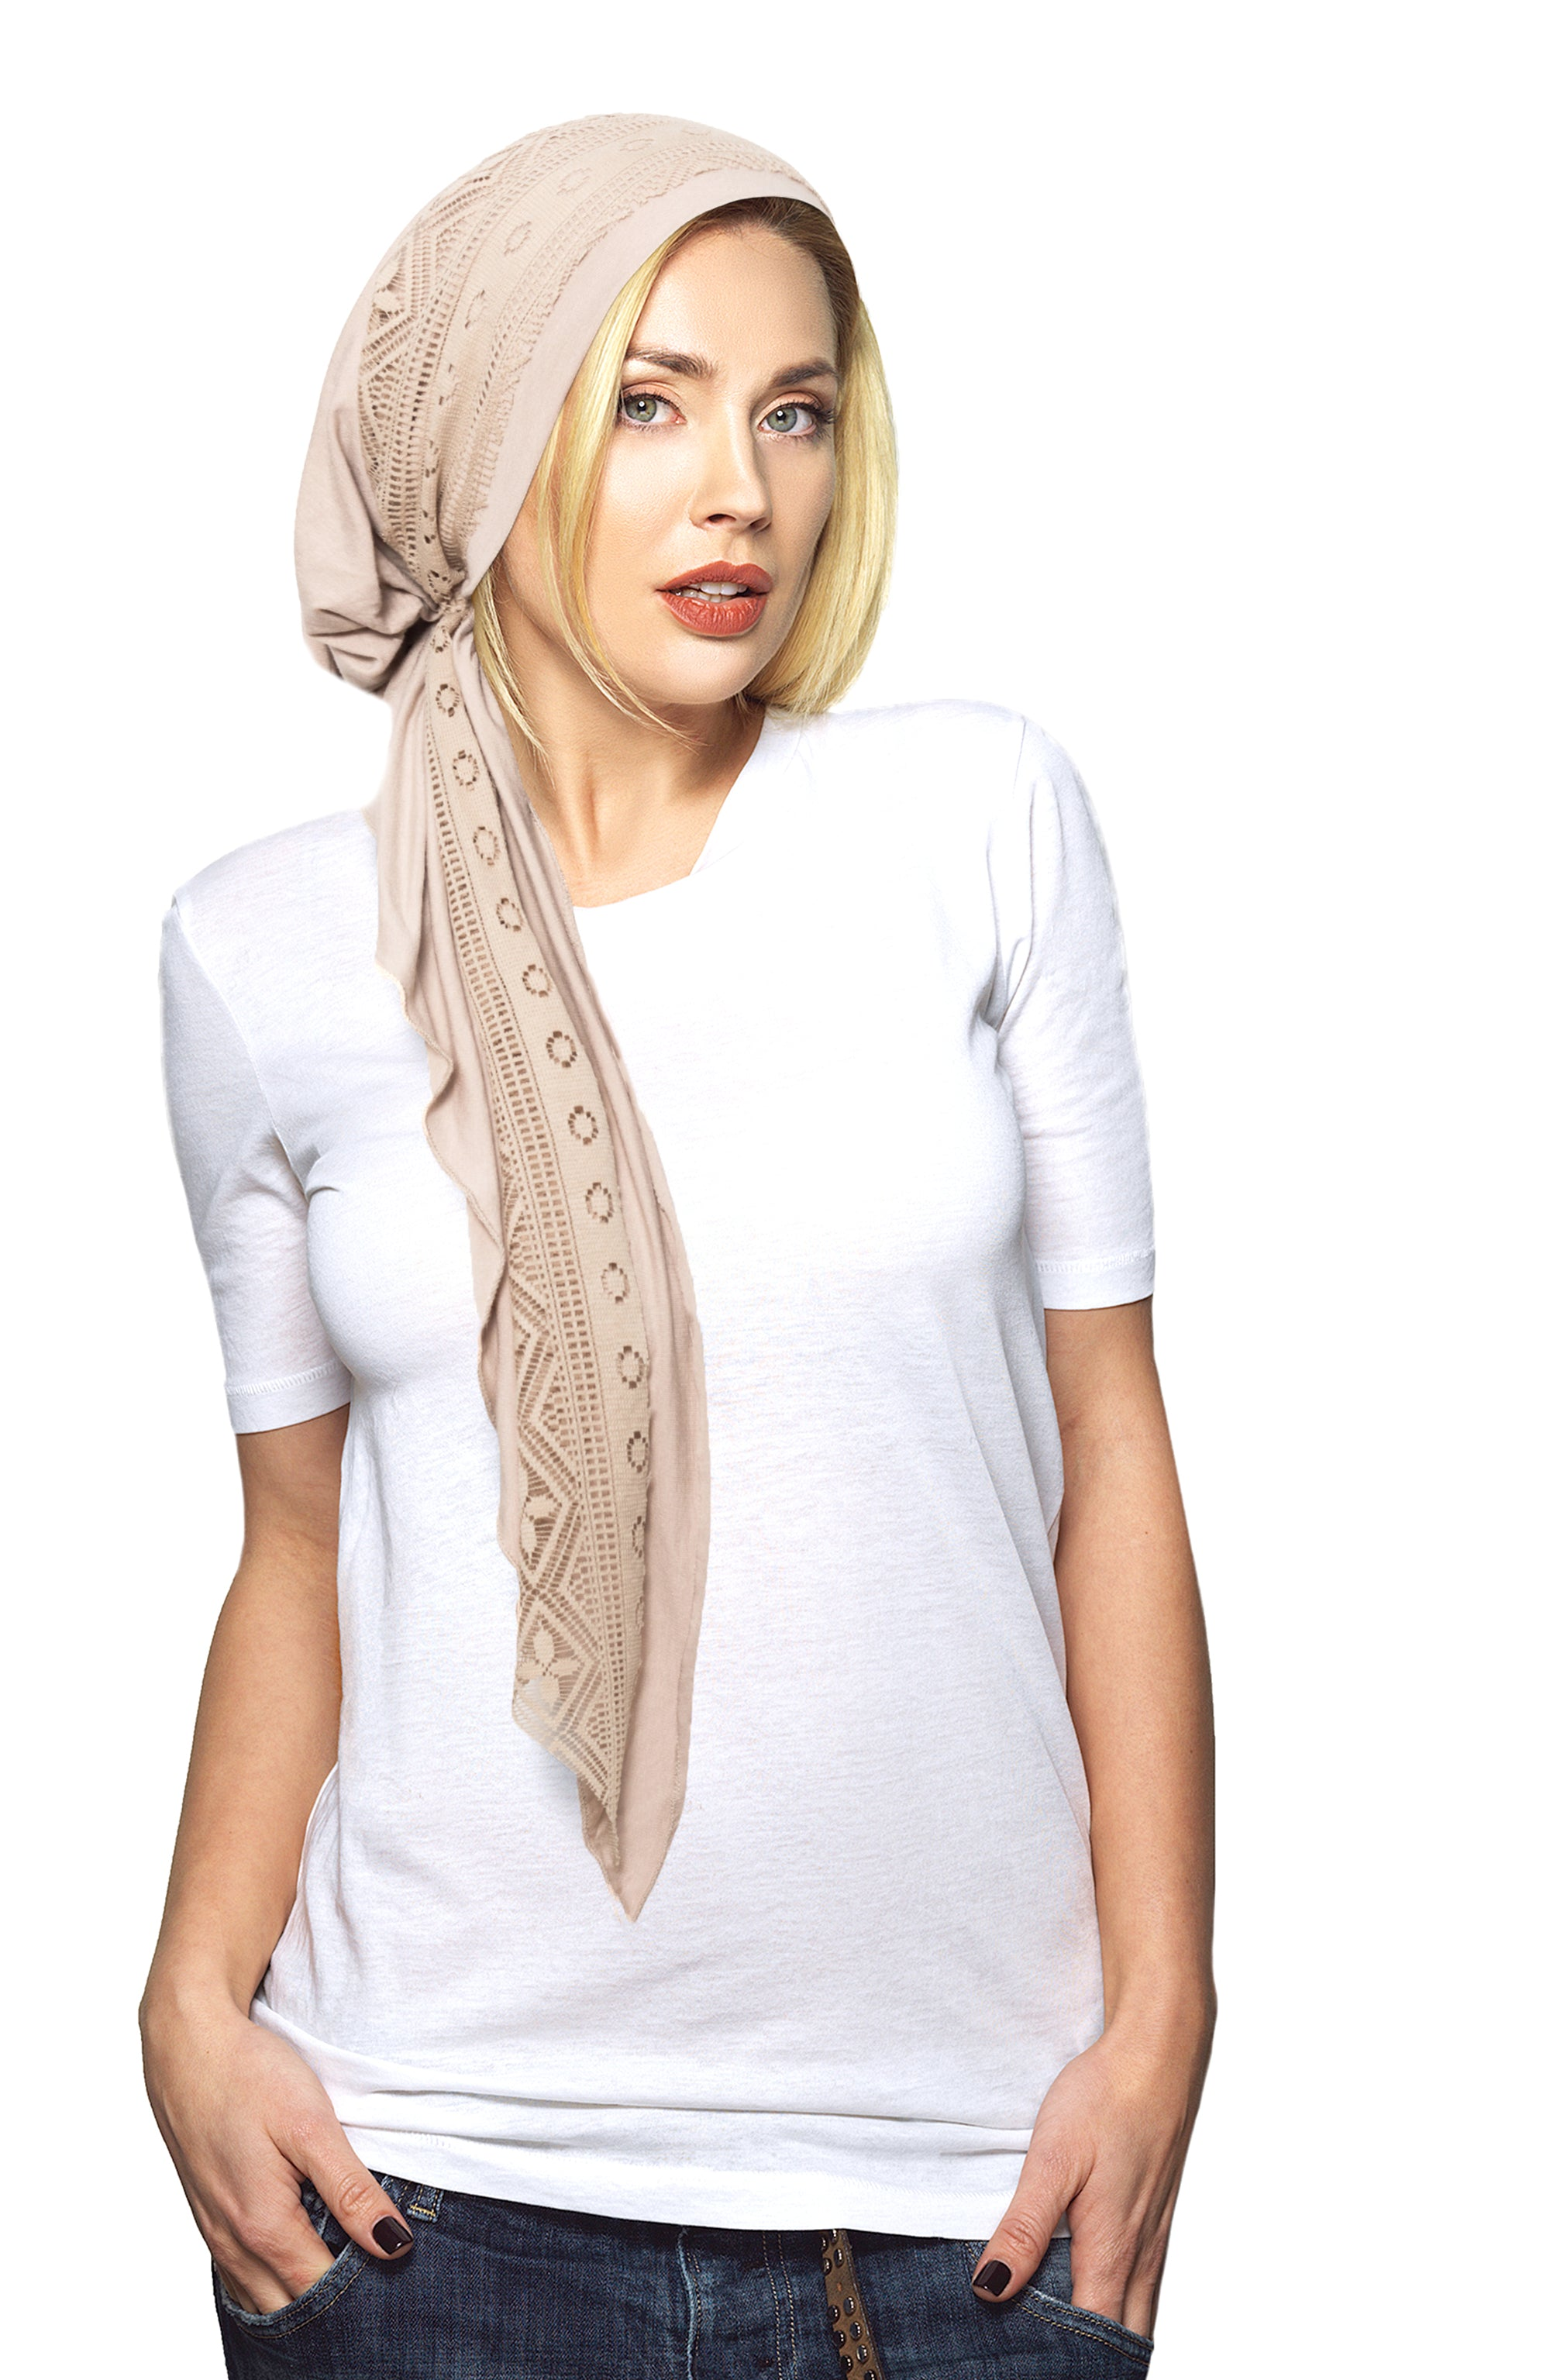 Beige pre-tied headscarf shabby chic lace wrap